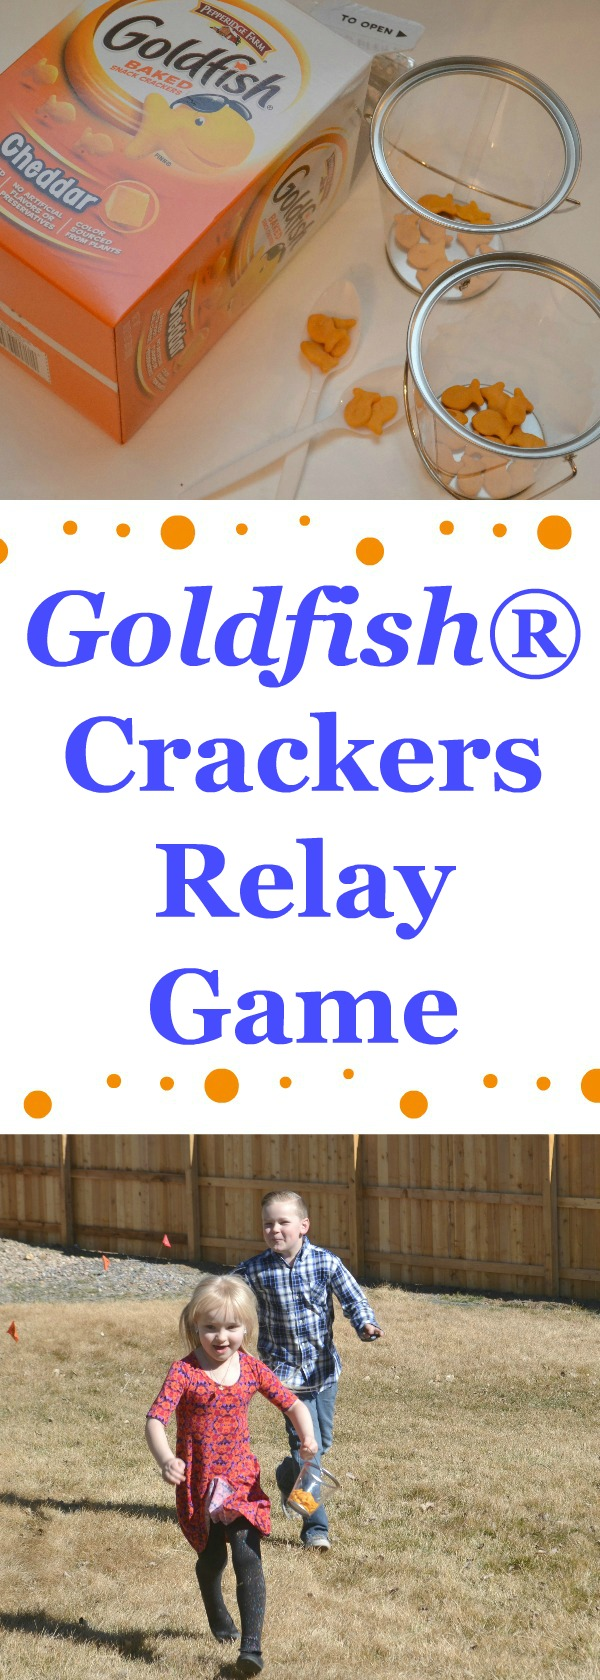 Goldfish® Relay Game For Kids, Goldfish games, games using goldfish crackers, creative games using Goldfish crackers, relay games for kids, easy relay games for kids, outside relay games for kids, springtime games for kids